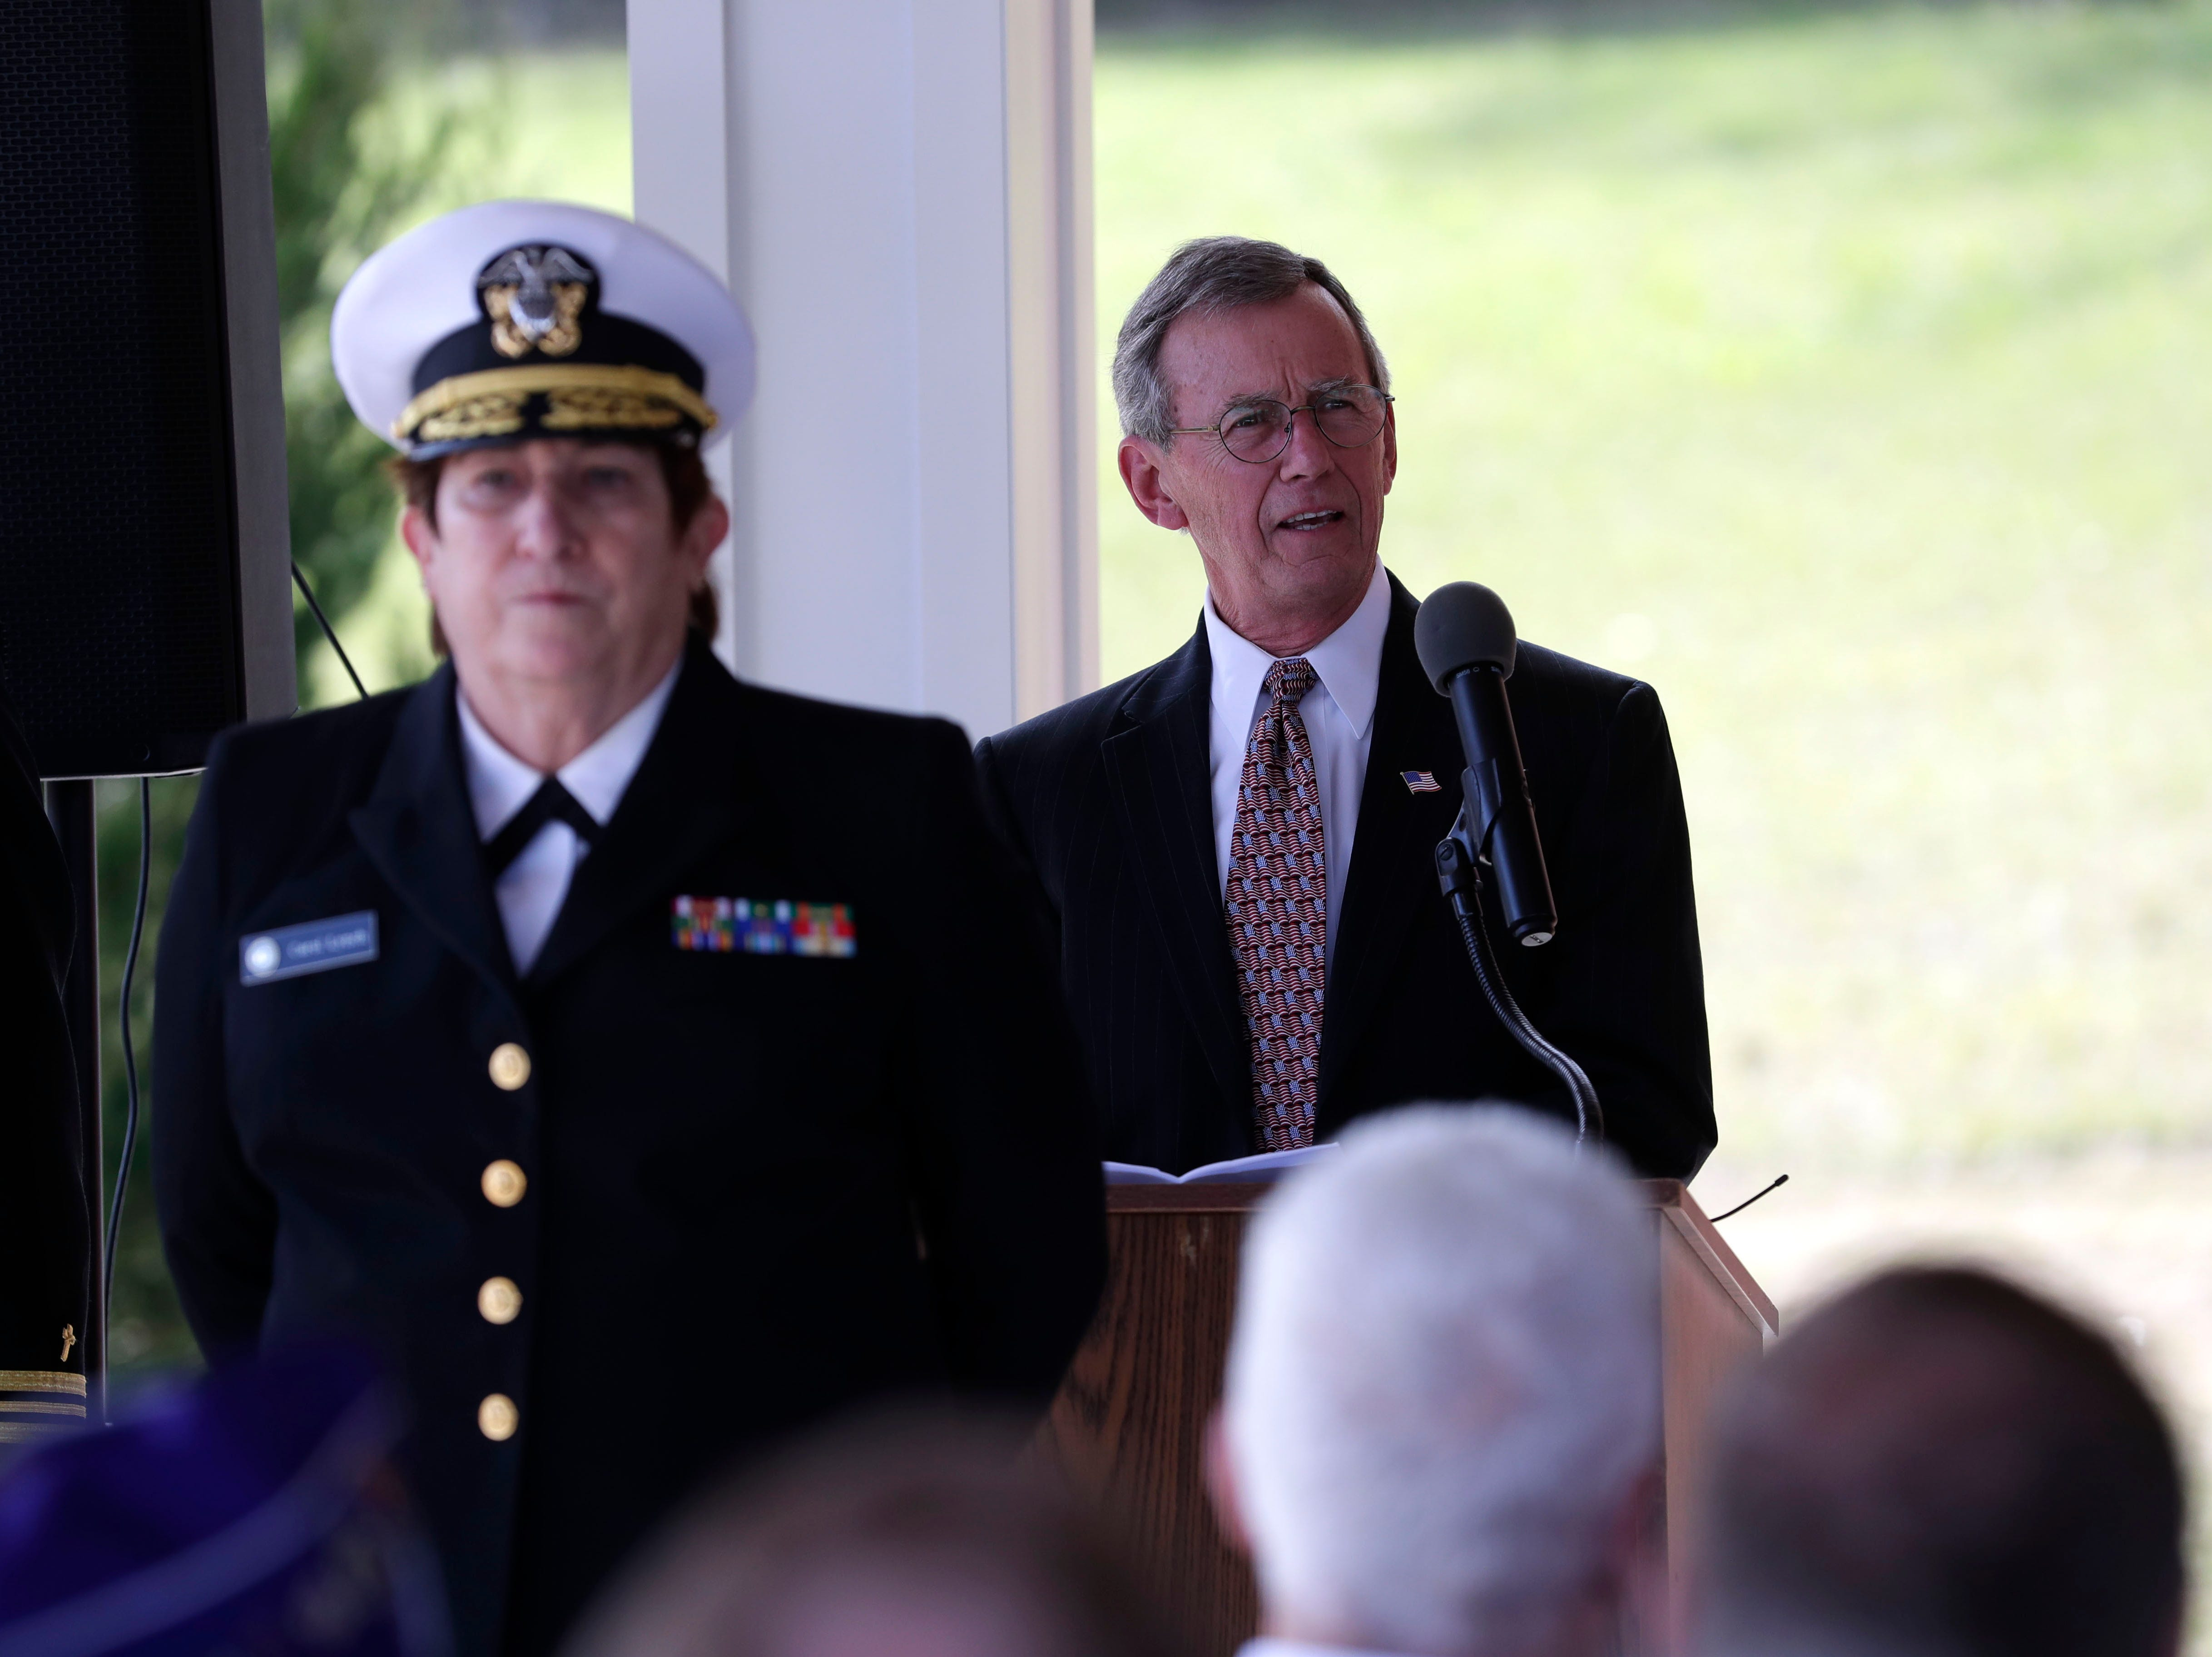 Rear Adm. Rick Grant speaks on behalf of the Baum family. A funeral was held at the Tallahassee National Cemetery honoring Earl Paul Baum, a sailor who was killed in Pearl Harbor, Friday, March 8, 2019.